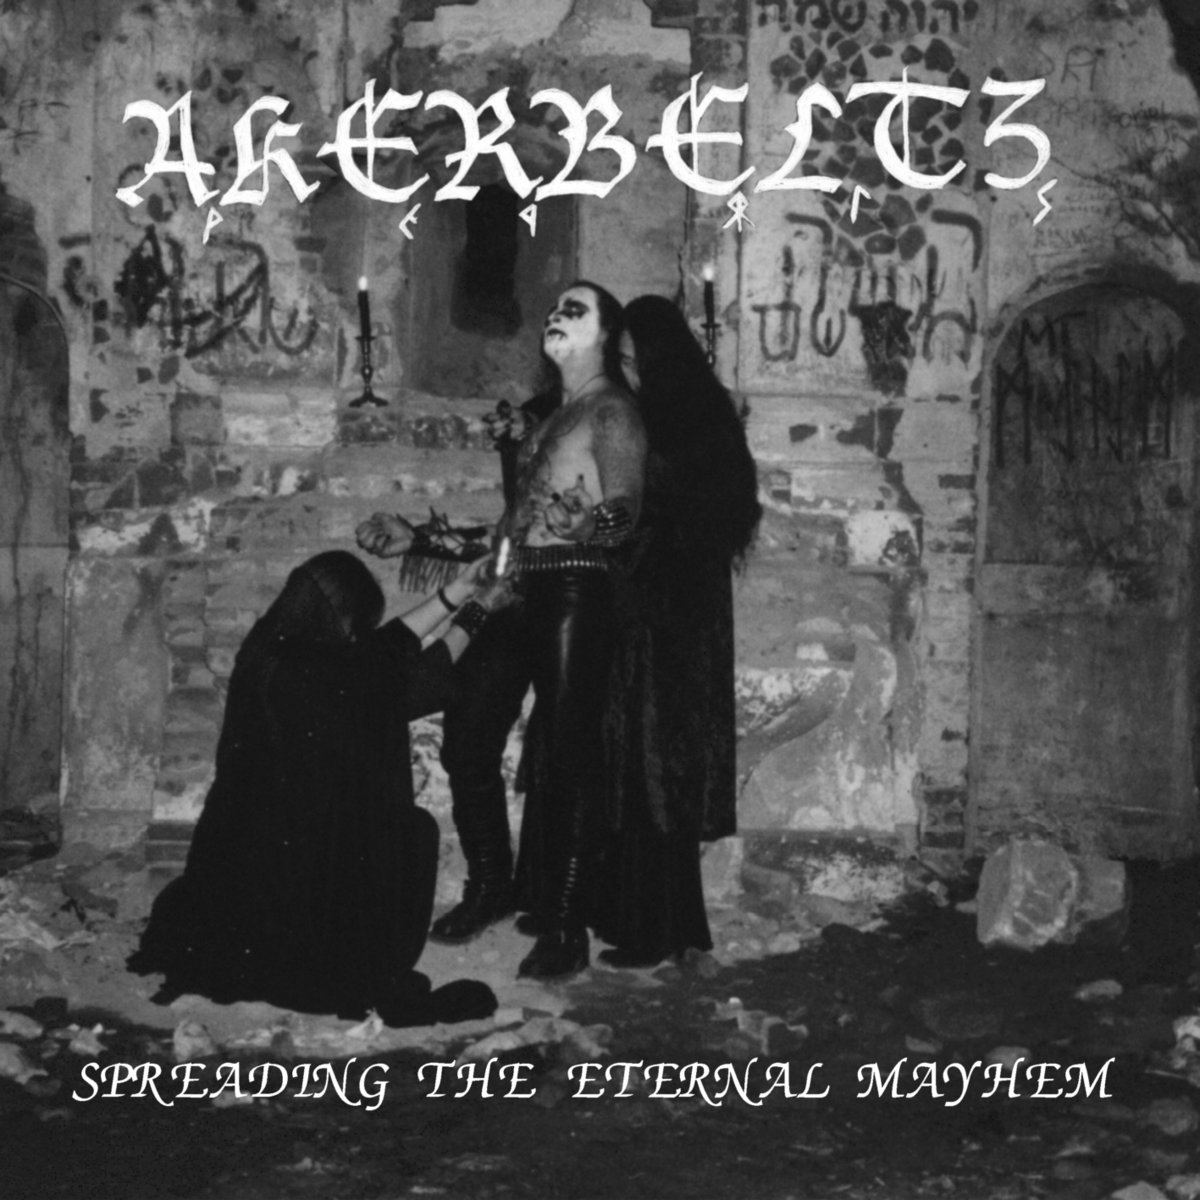 Akerbeltz - Spreading the Eternal Mayhem